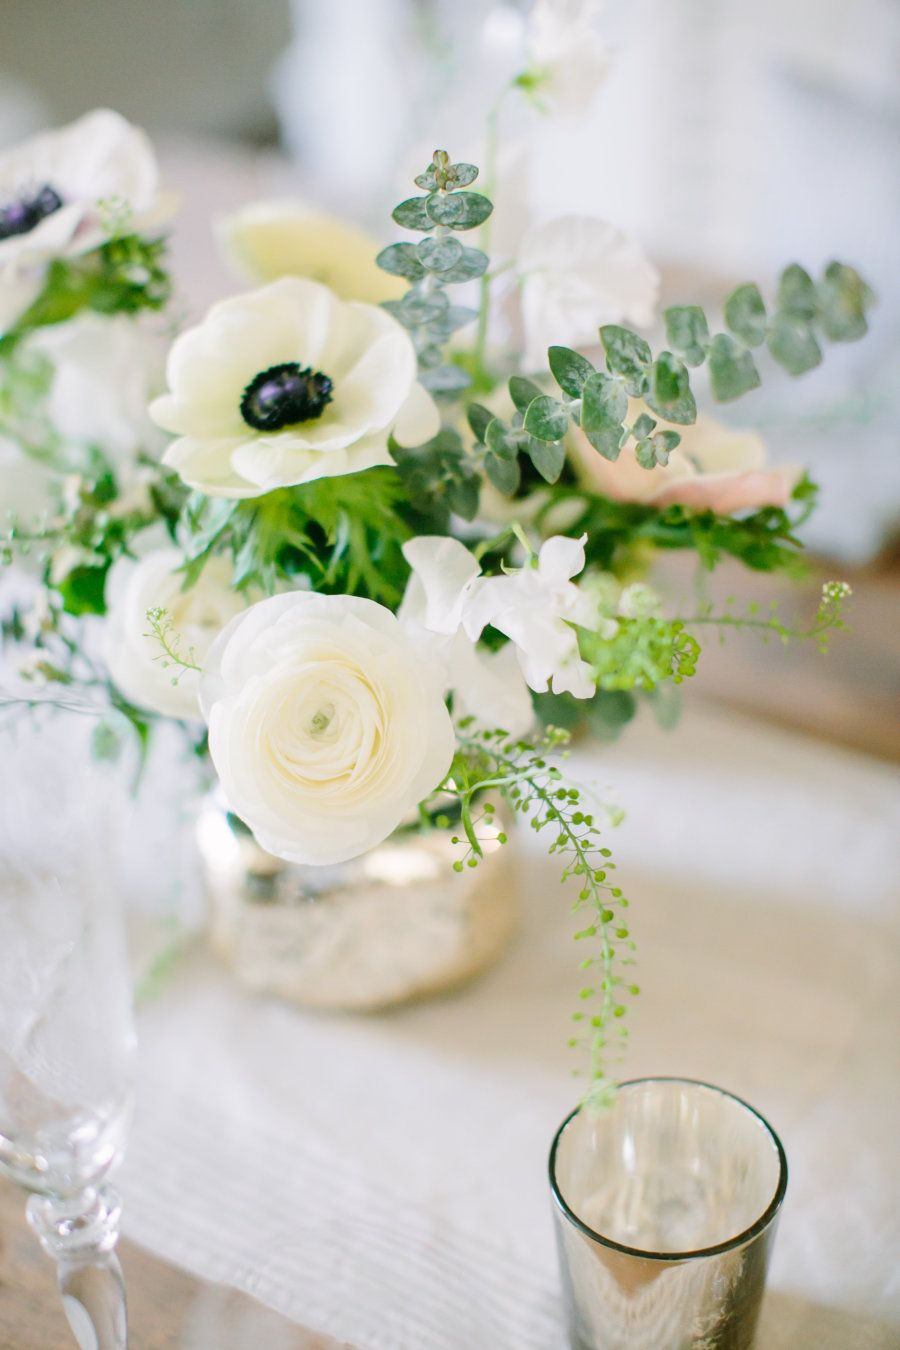 5 Tips For Staying True to Your Style While Planning Your Wedding ...